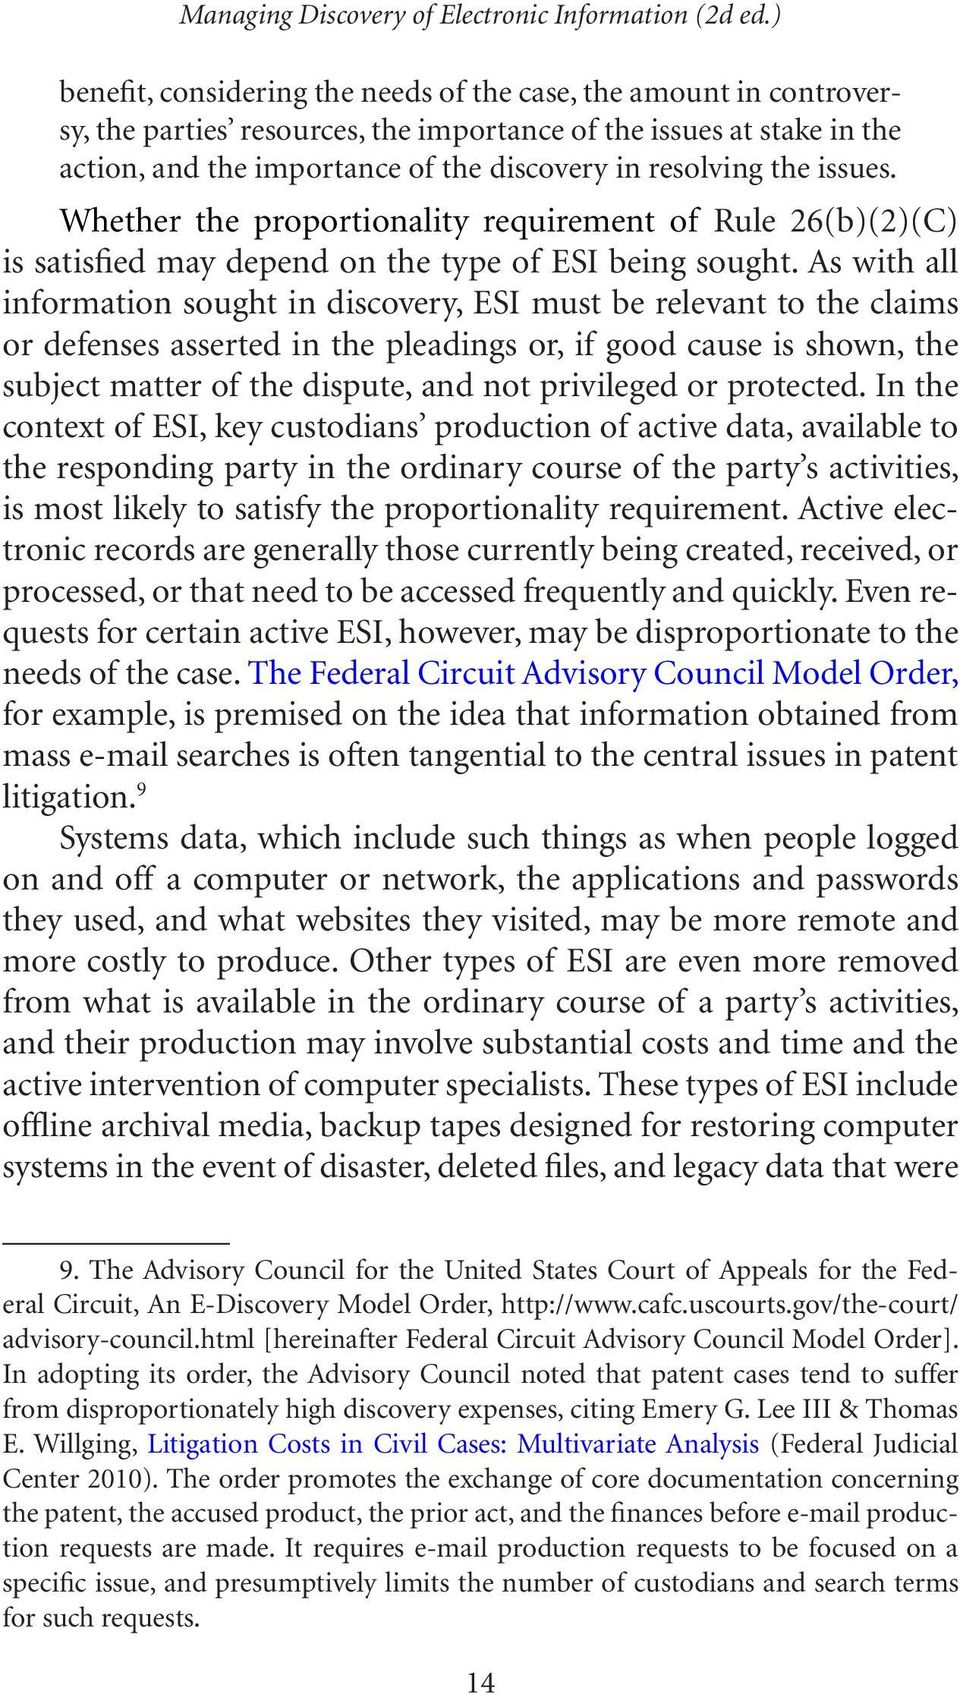 As with all information sought in discovery, ESI must be relevant to the claims or defenses asserted in the pleadings or, if good cause is shown, the subject matter of the dispute, and not privileged